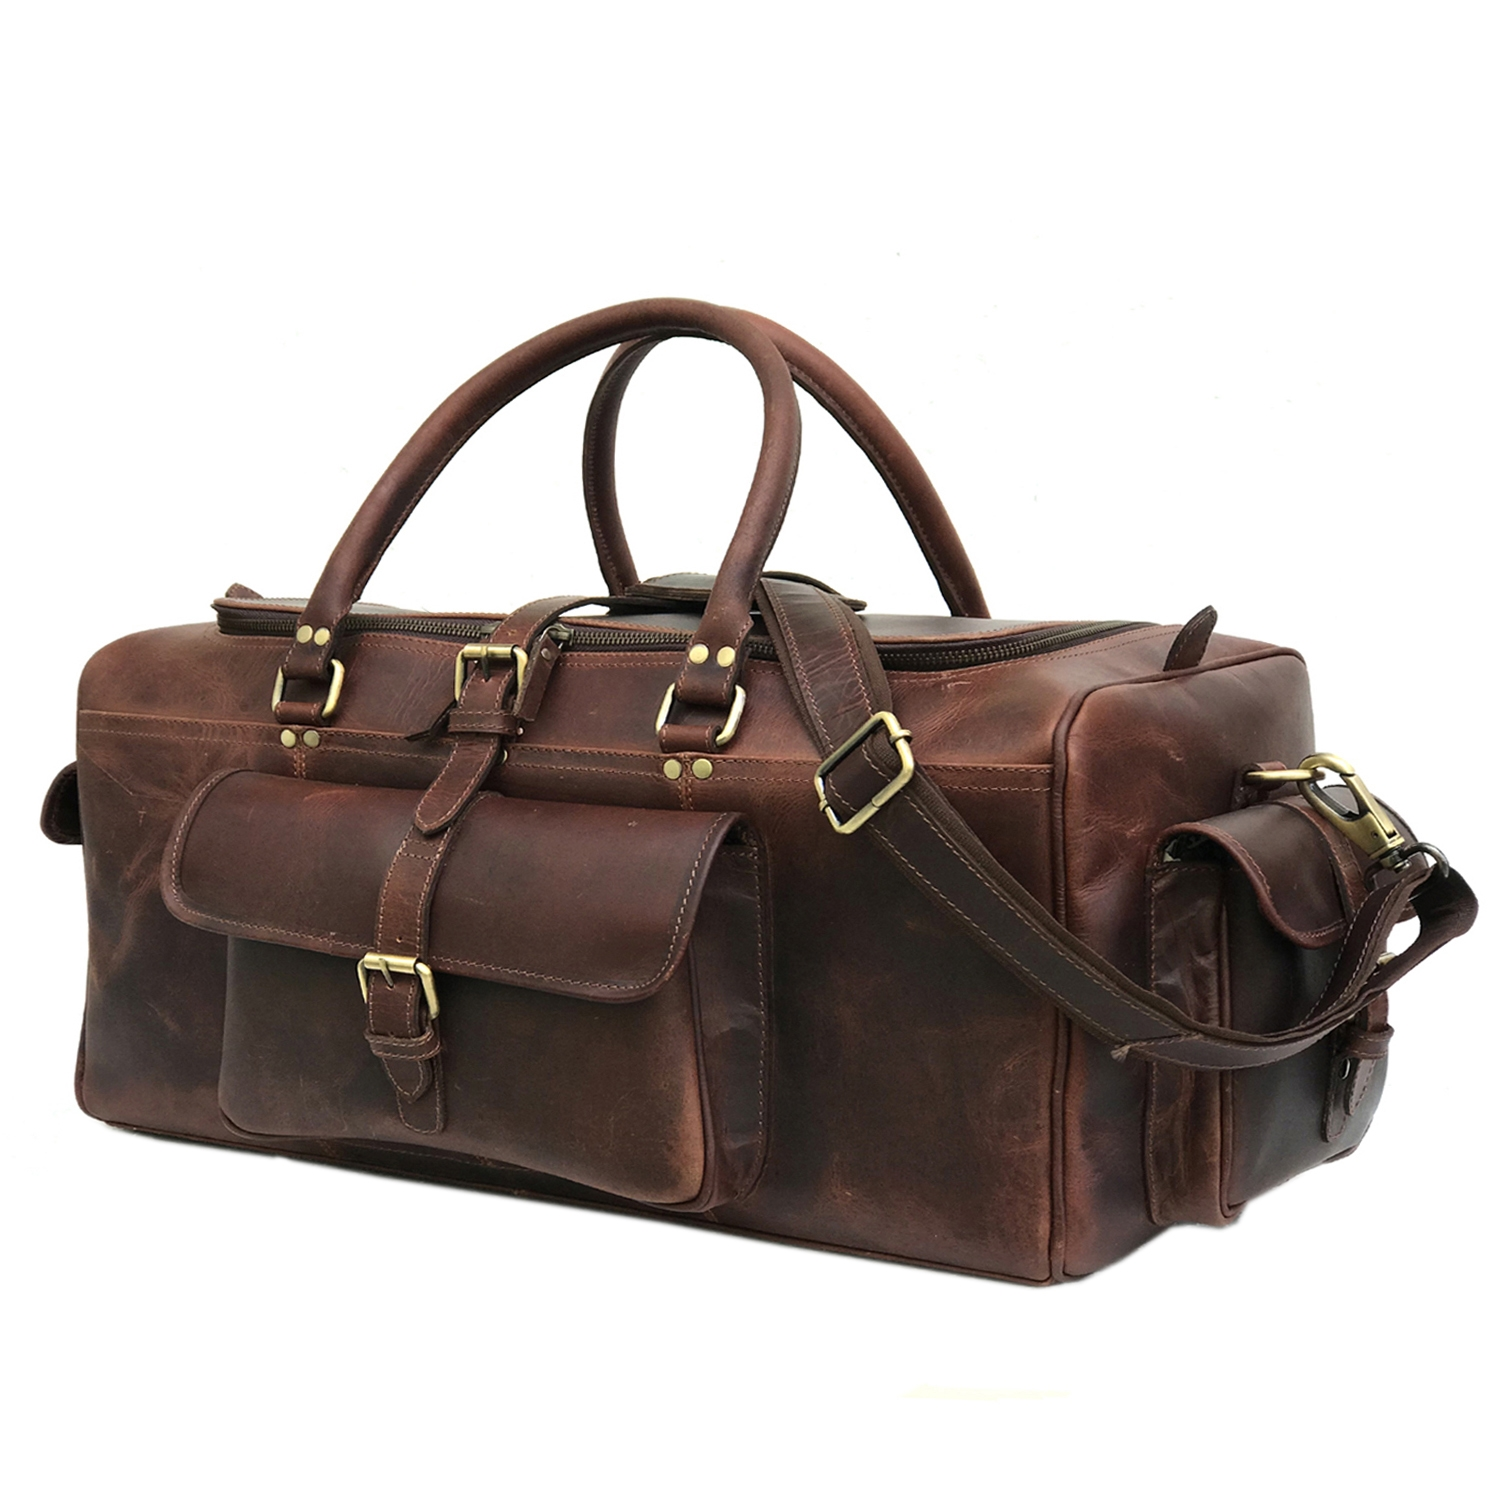 Zakara Leather Overnight Travel Bag